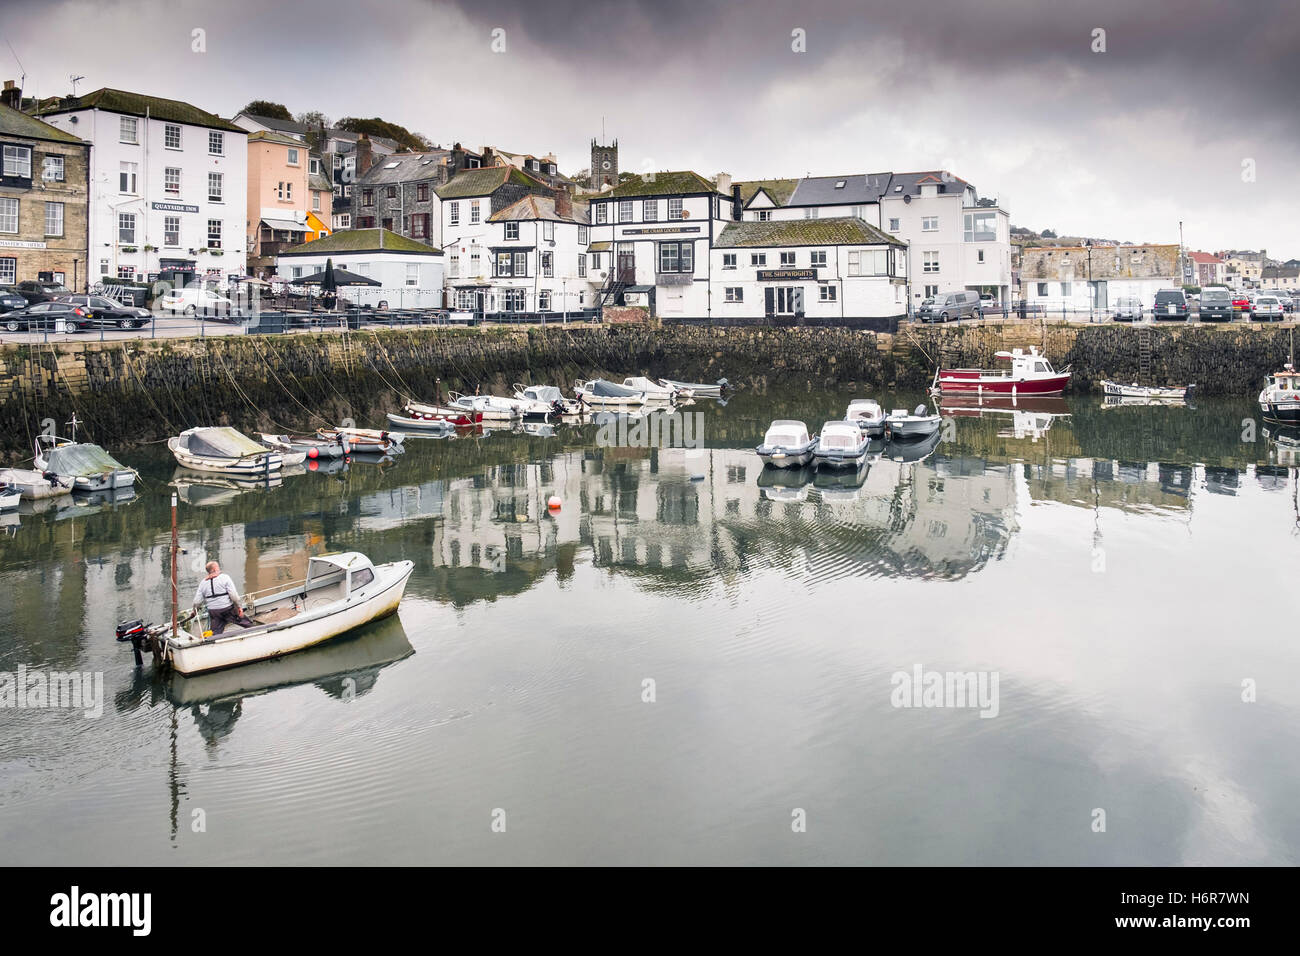 The small harbour at Custom House Quay in Falmouth, Cornwall. - Stock Image